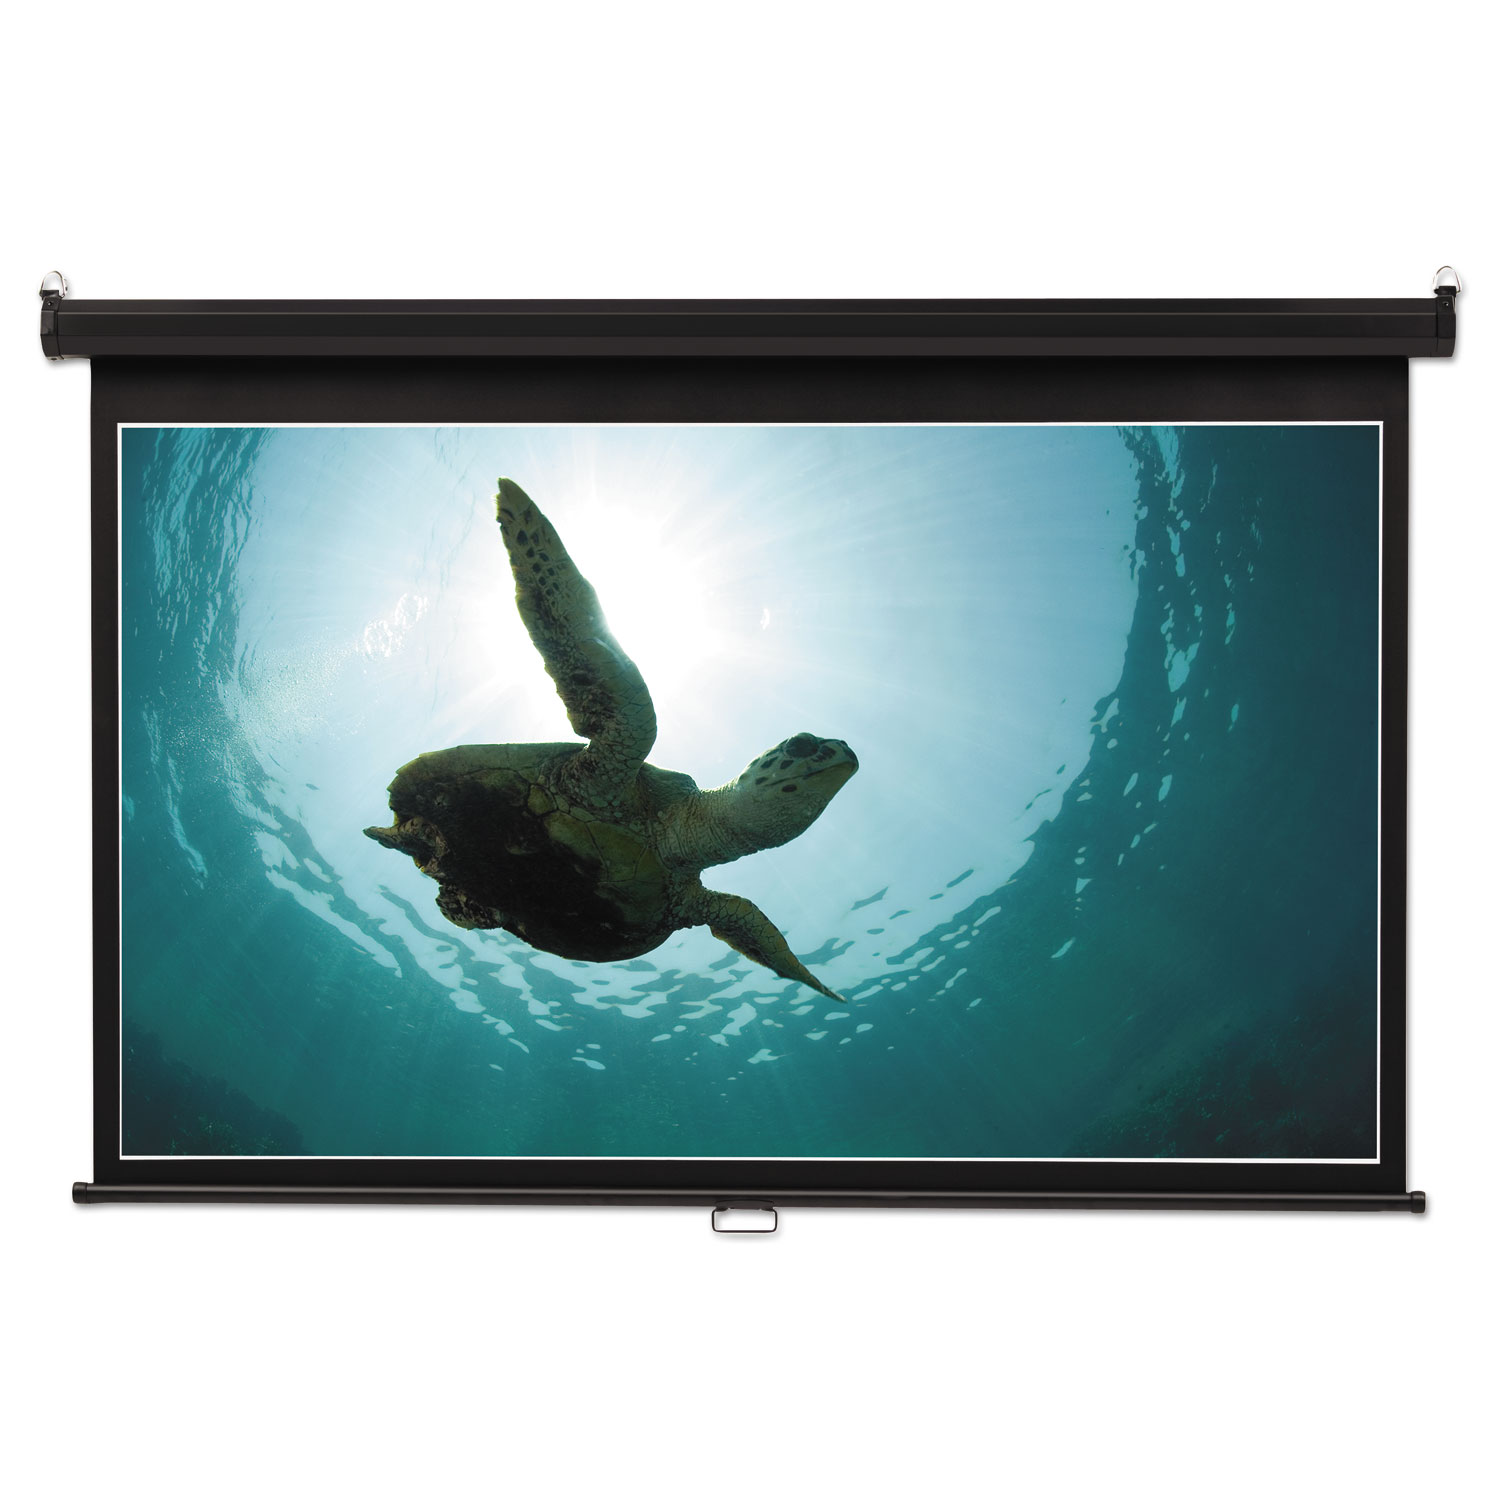 Wide Format Wall Mount Projection Screen, 65 x 116, White